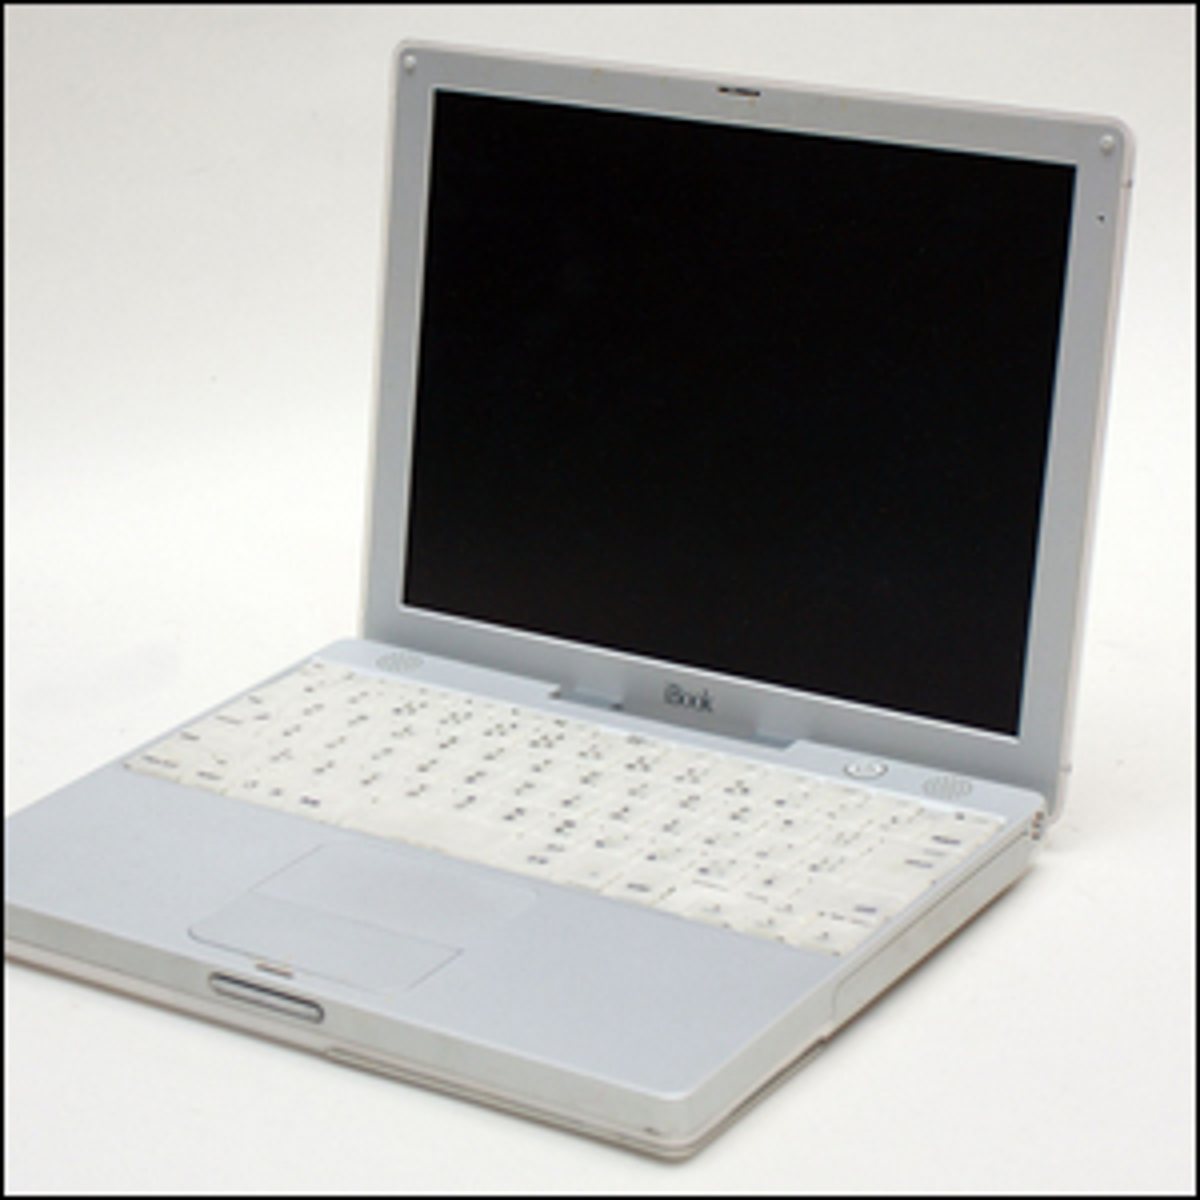 The Japanese model of the Apple iBook G3 M6497 laptop.